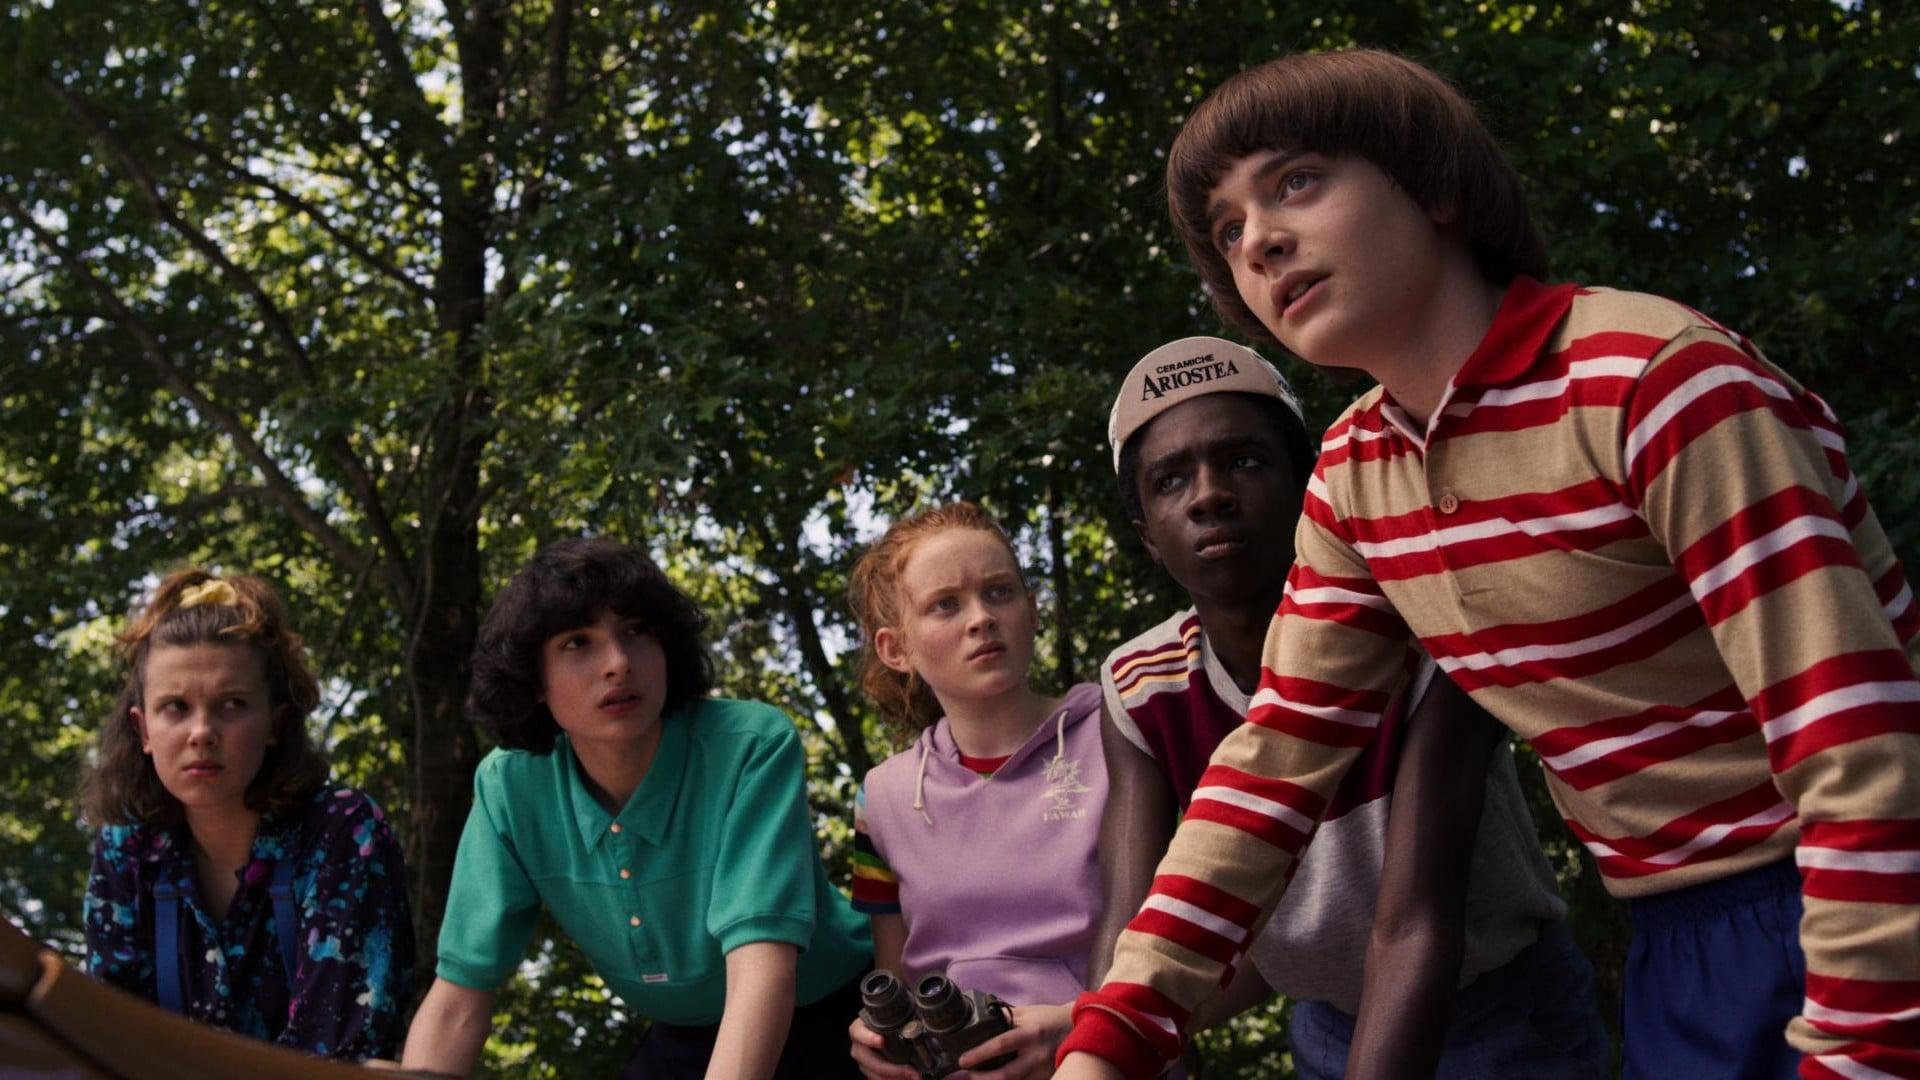 Stranger Things S03e04 Chapter Four The Sauna Test Summary - Sauna Test